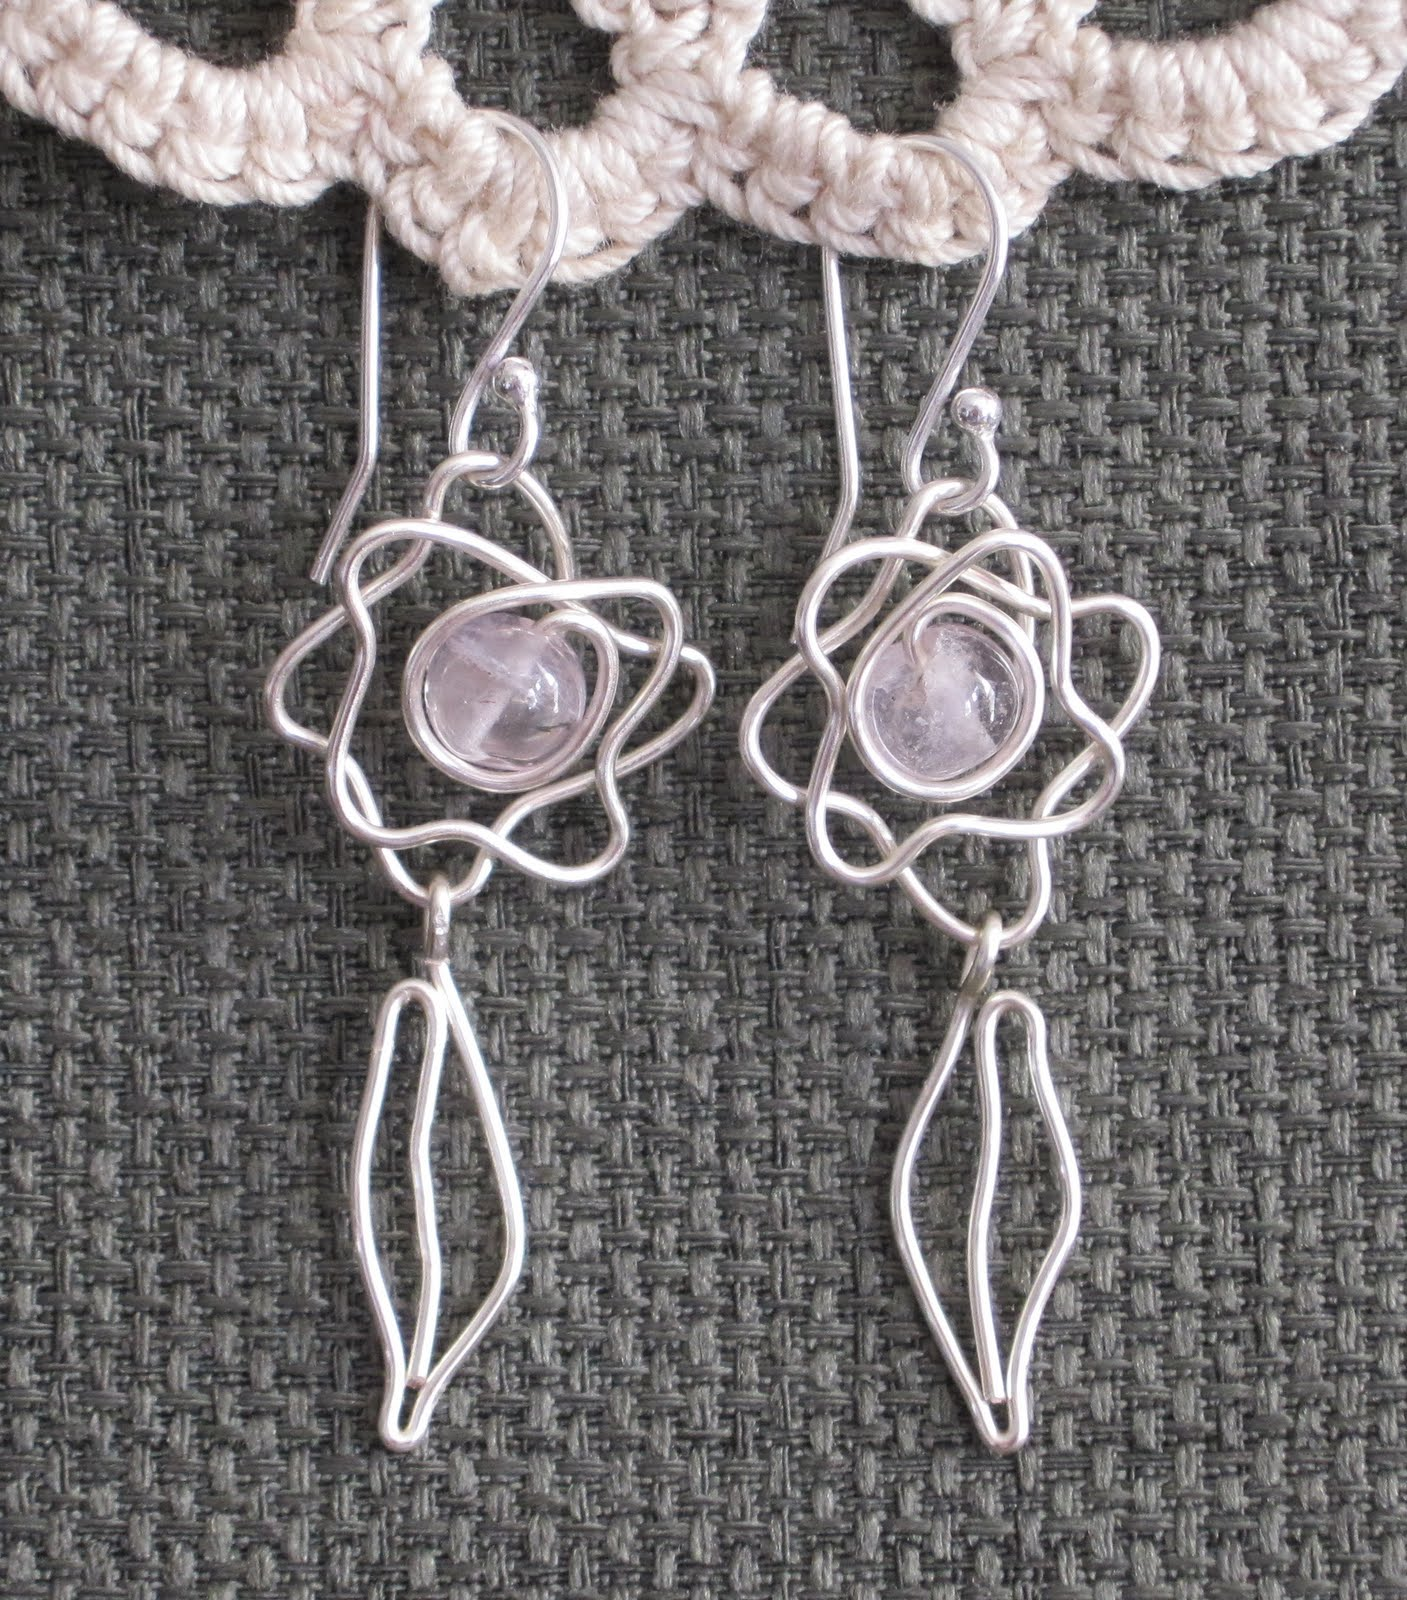 Doodle Wire Earrings Tutorials Just for Fun! - The Beading Gem\'s Journal